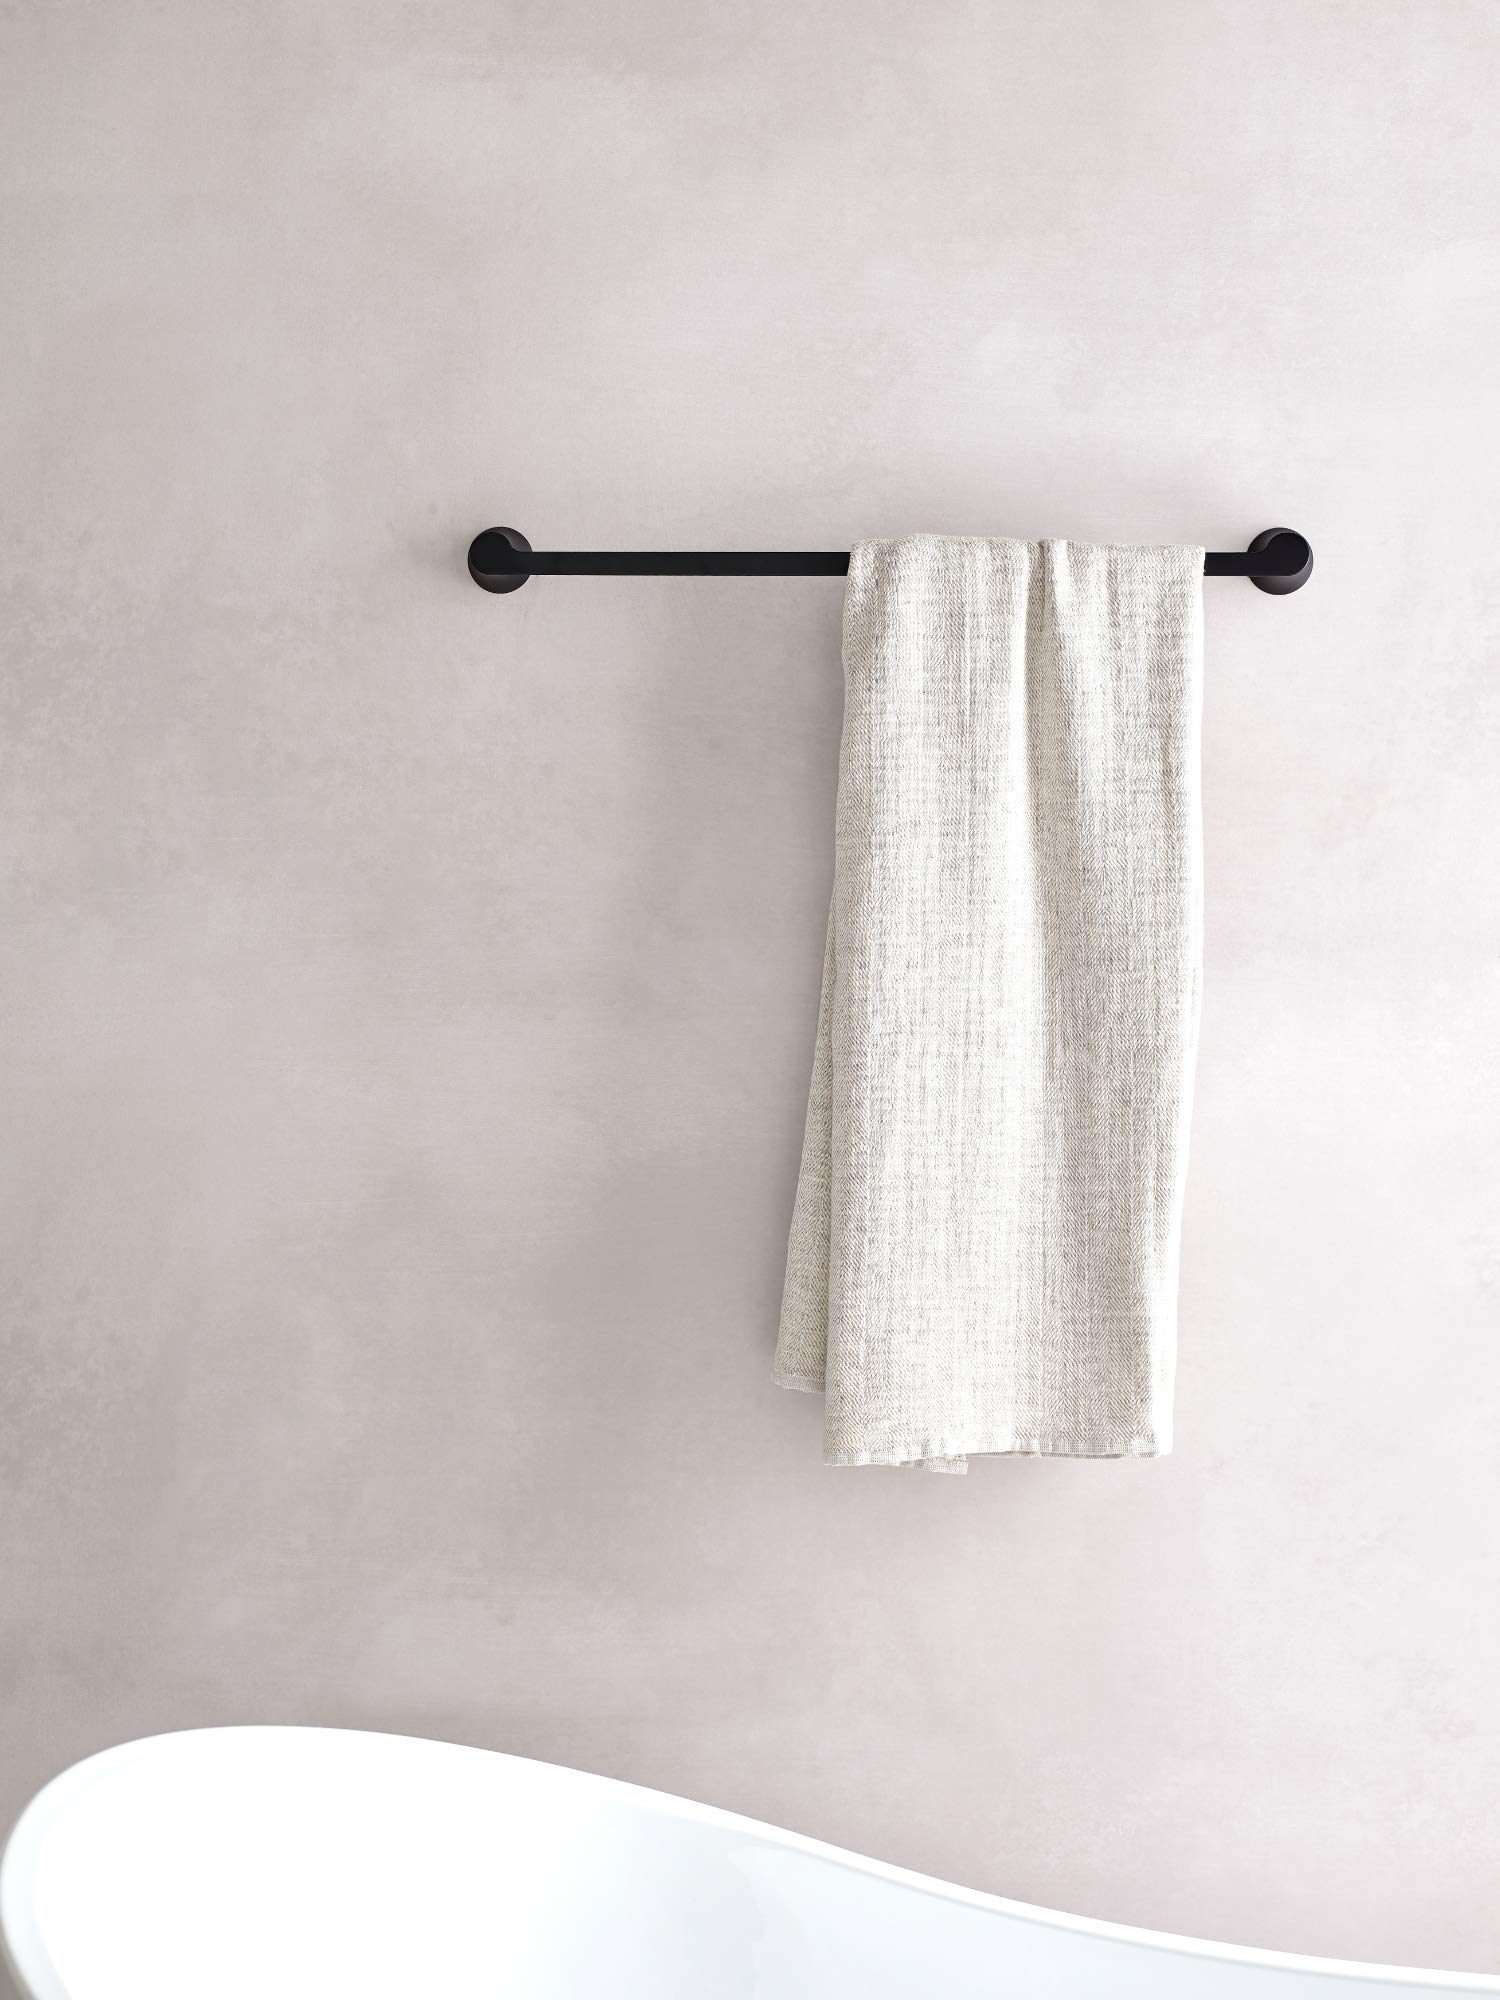 Moen YB0224BL Doux Collection 24'' Towel Bar Matte Black by Moen (Image #4)